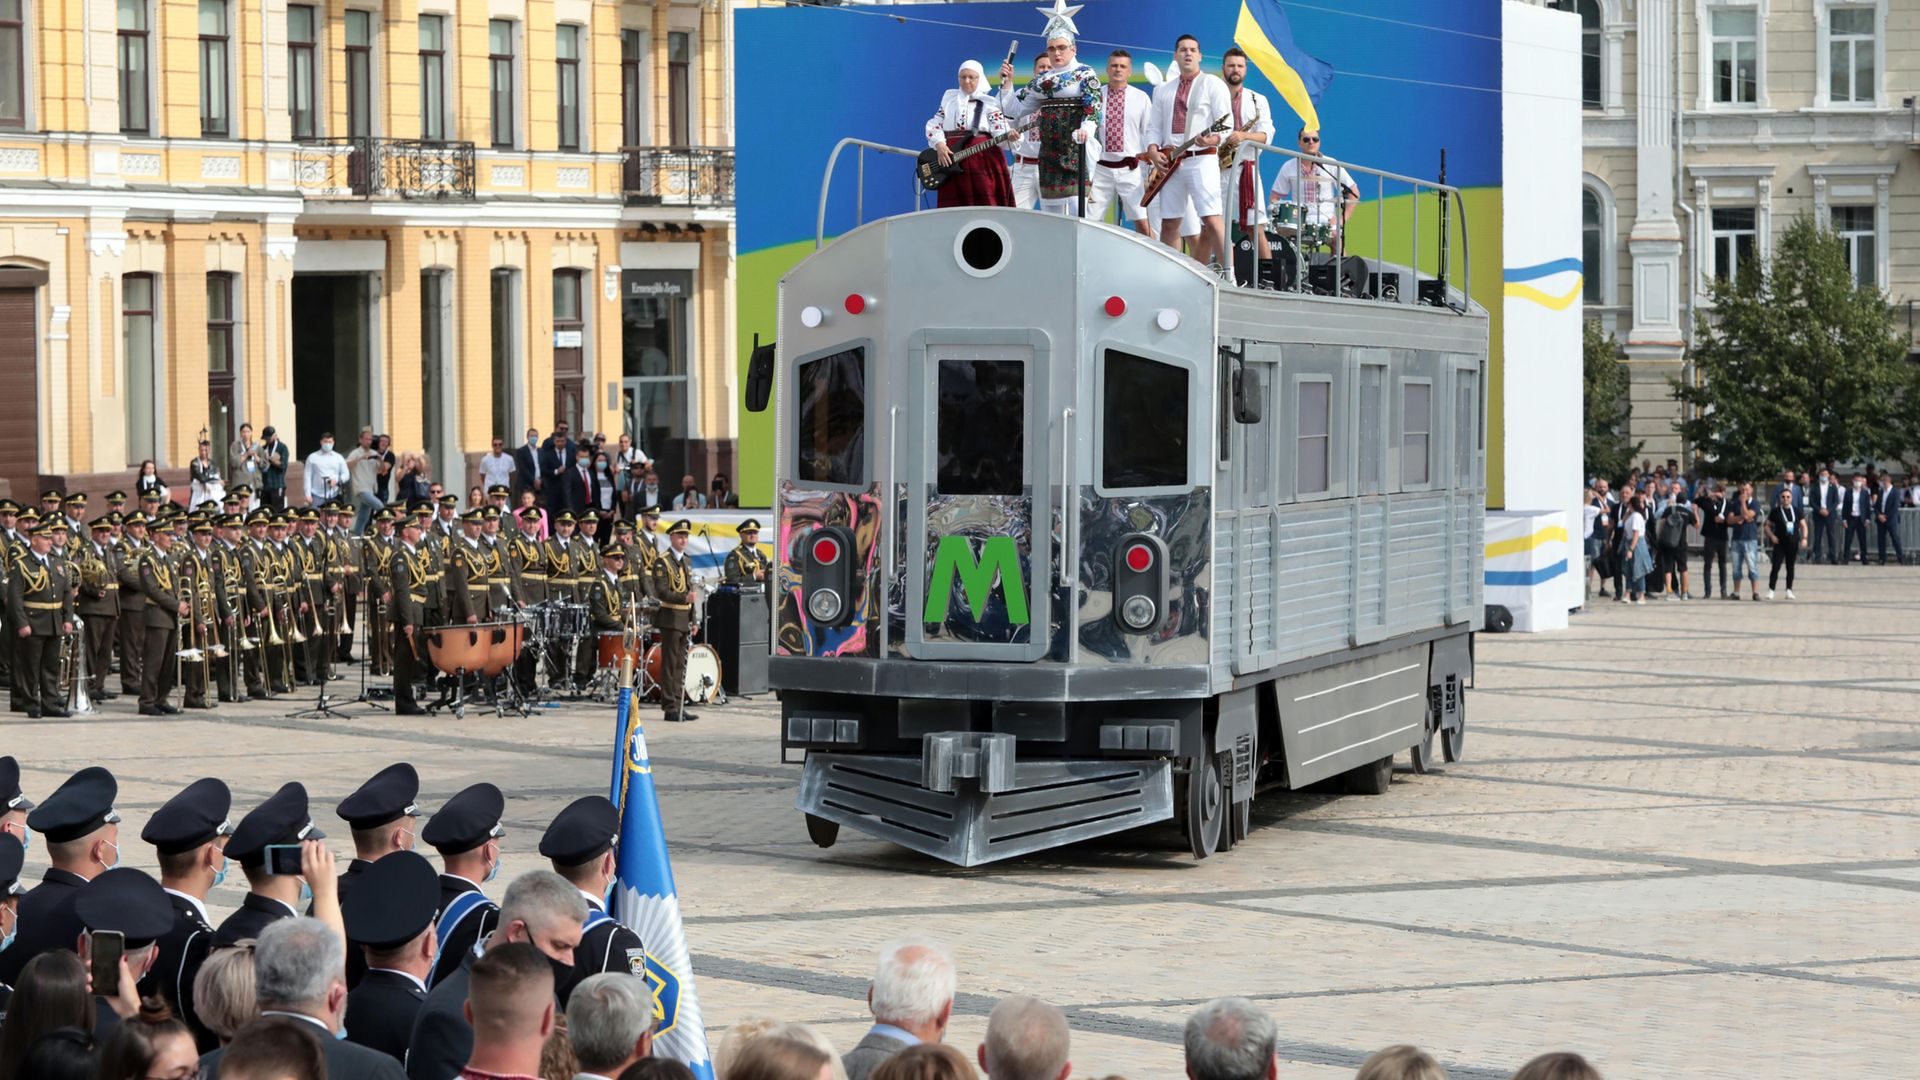 Singer Verka Serduchka (Andrii Danylko) makes a flamboyant appearance atop a 'train' for Ukraine's 29th Independence Day celebration in Kiev, in August 2020 - Credit: Barcroft Media via Getty Images